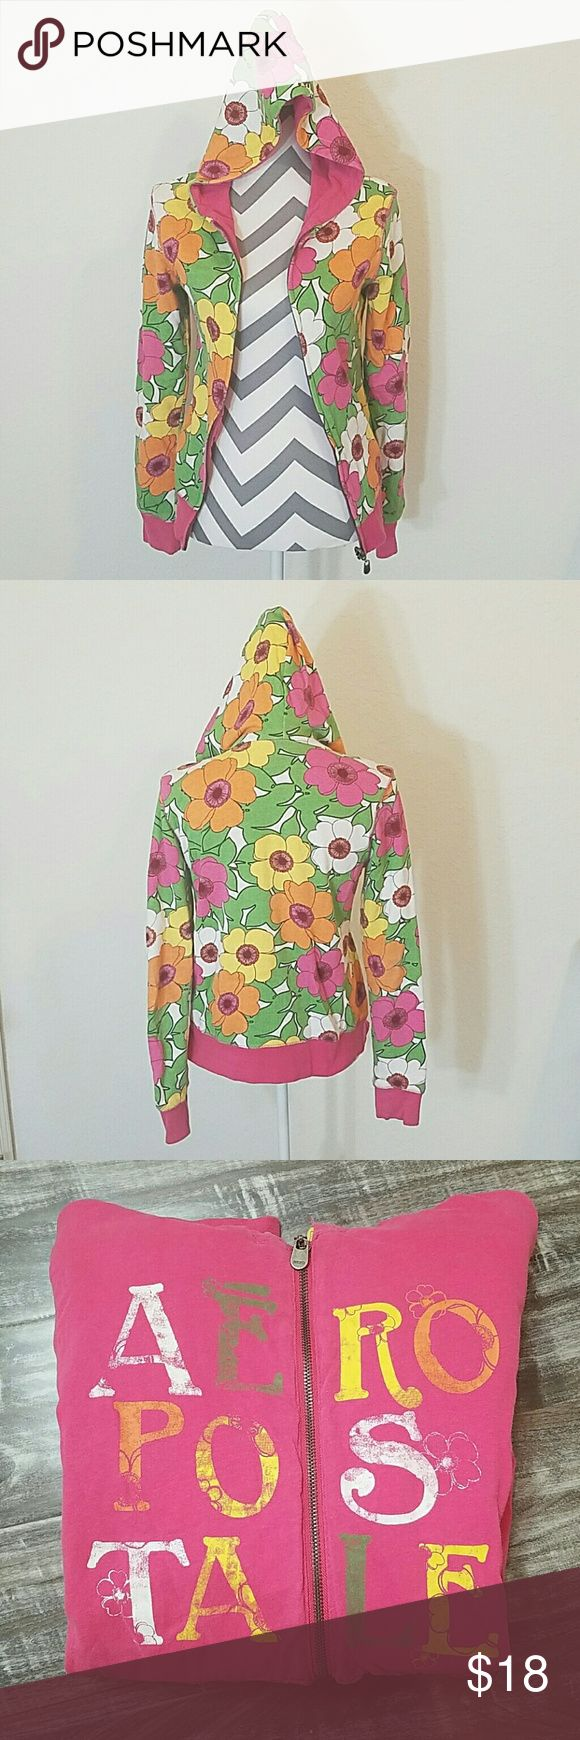 Reversible Aero Zip Up Sweater Wear as bright floral zip up or pink Aero Zip up. Worn 2 times. No stains or tears. Like new condition! Aeropostale Sweaters